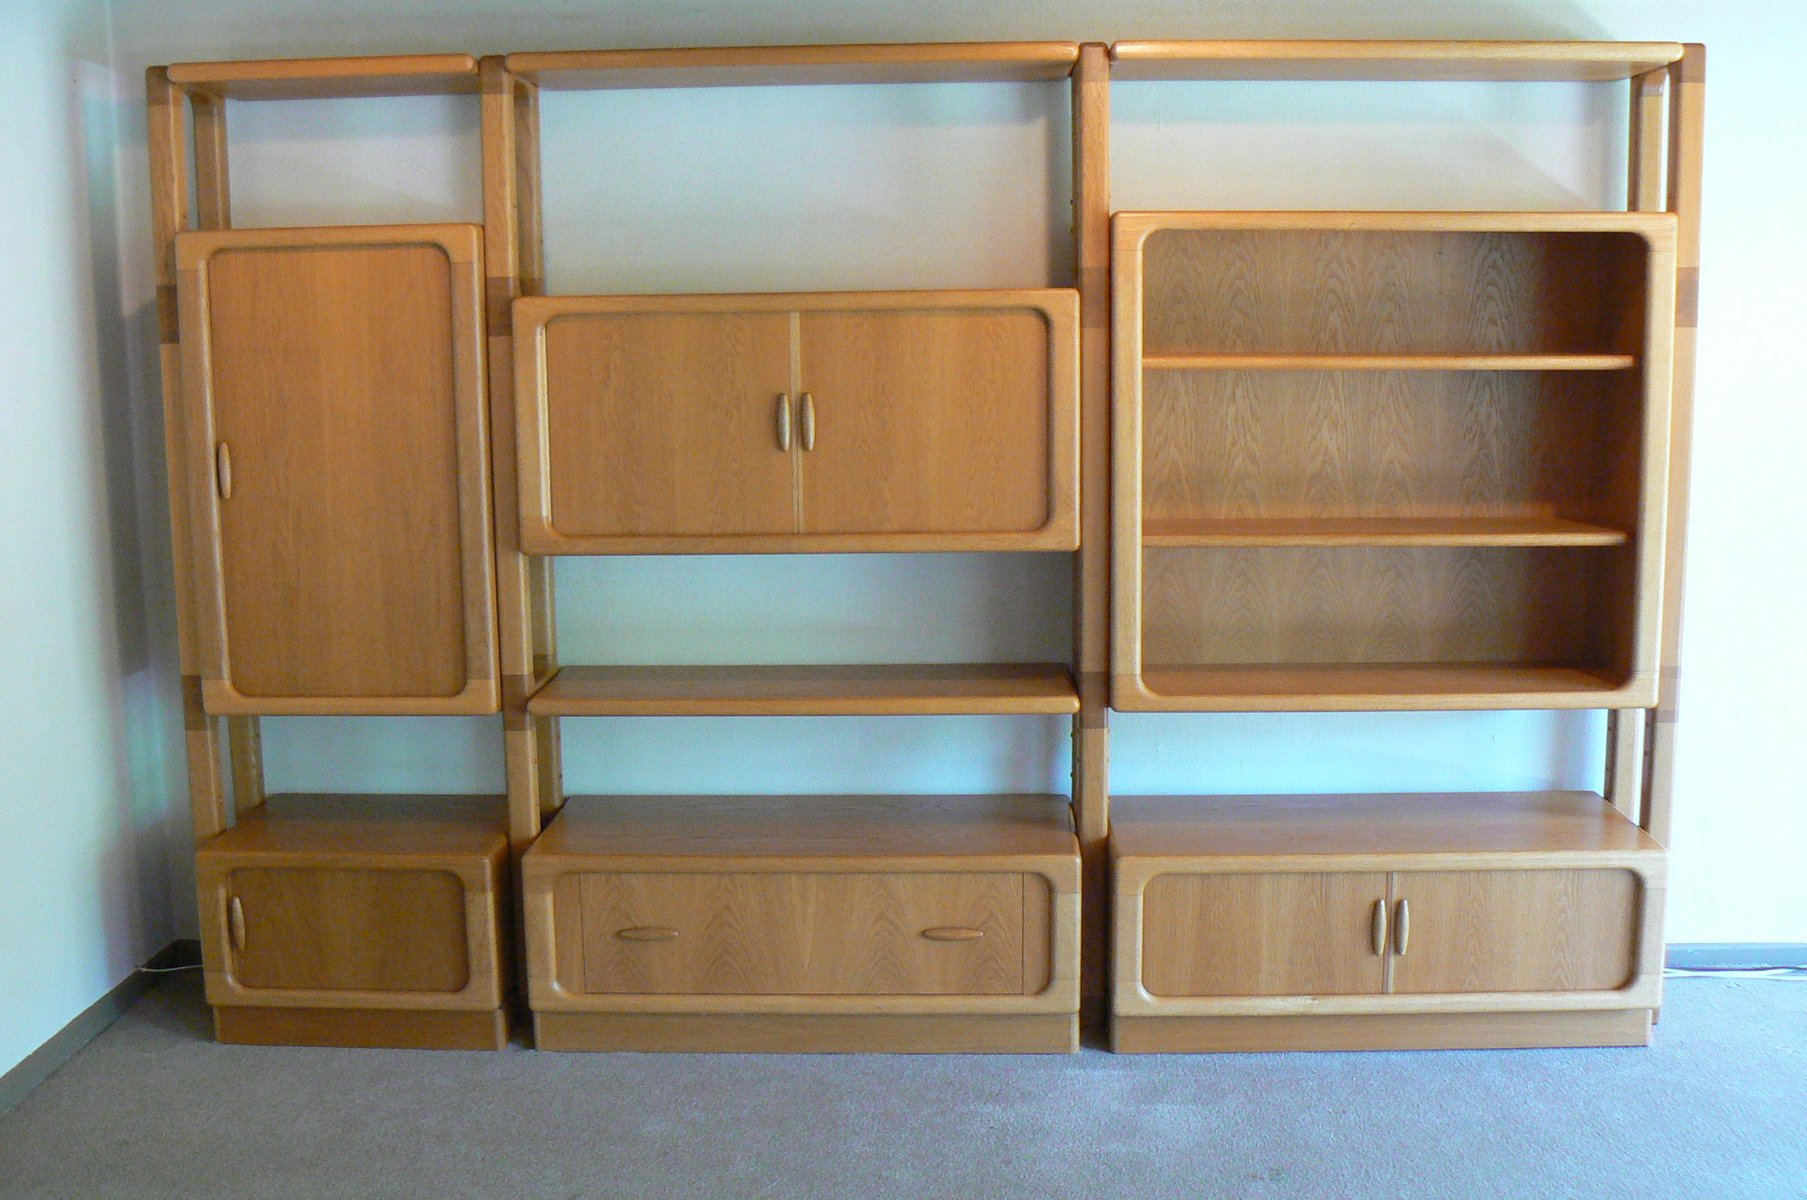 Large Oak Wall Unit With Sliding Doors From Dyrlund 1980s For Sale